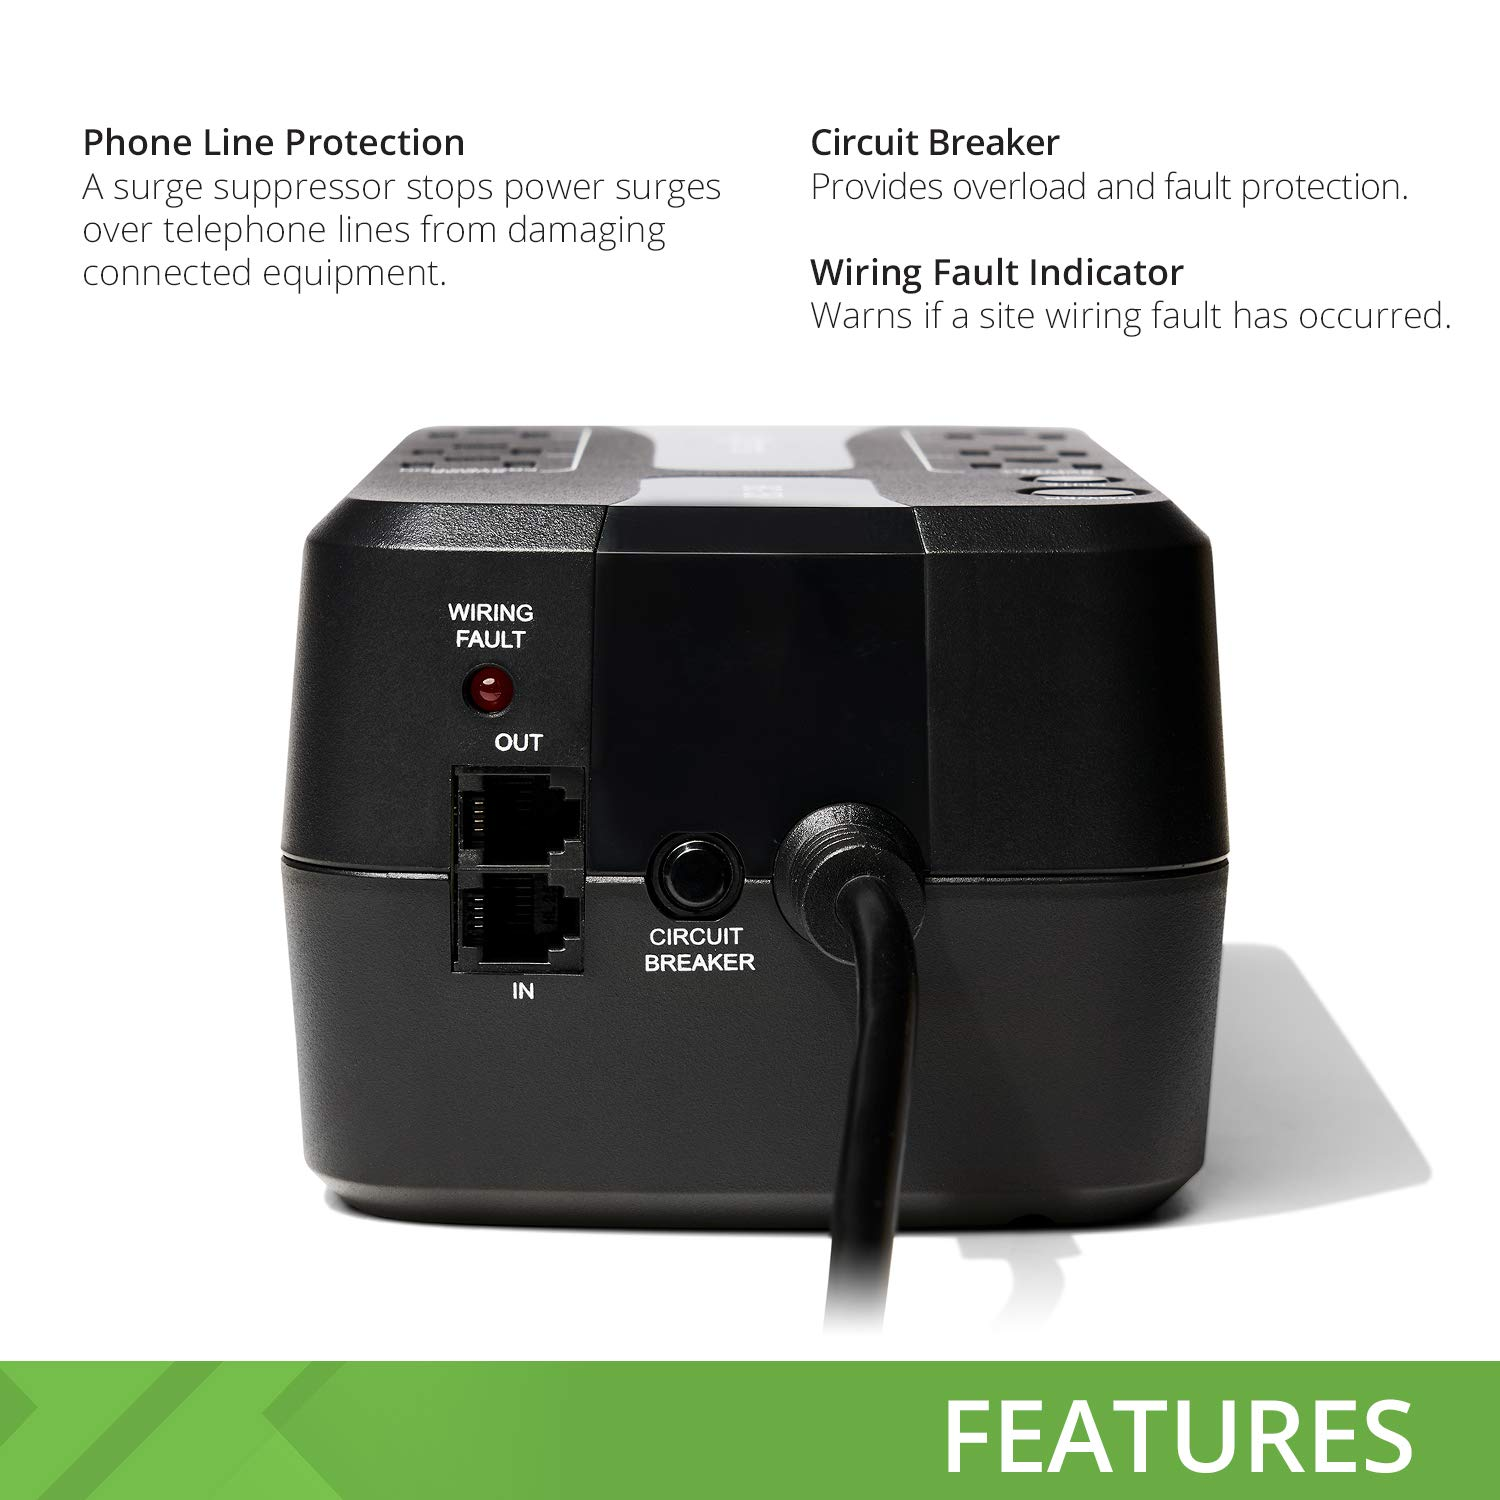 bXterra 350VA UPS BG350 Standby UPS Battery Backup, 6 Outlets, Easy Mute Button, RJ11, Energy Star, LEDs, Contoured Design, Compact by bXterra (Image #3)